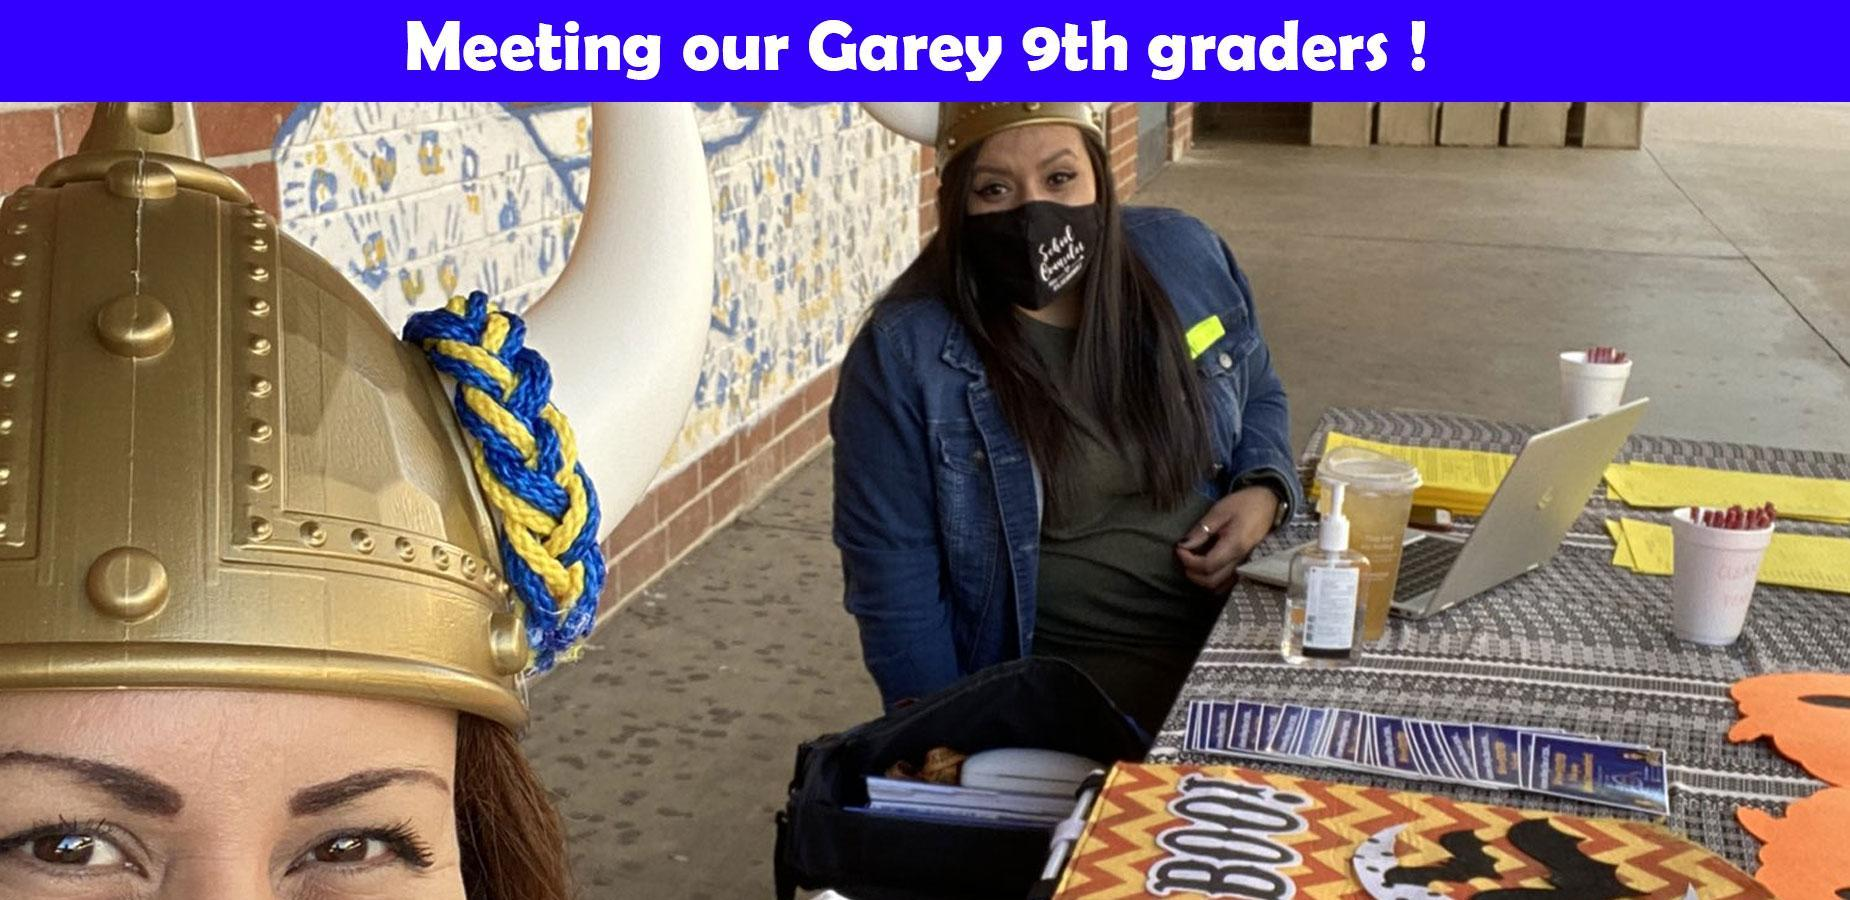 meeting our 9th graders